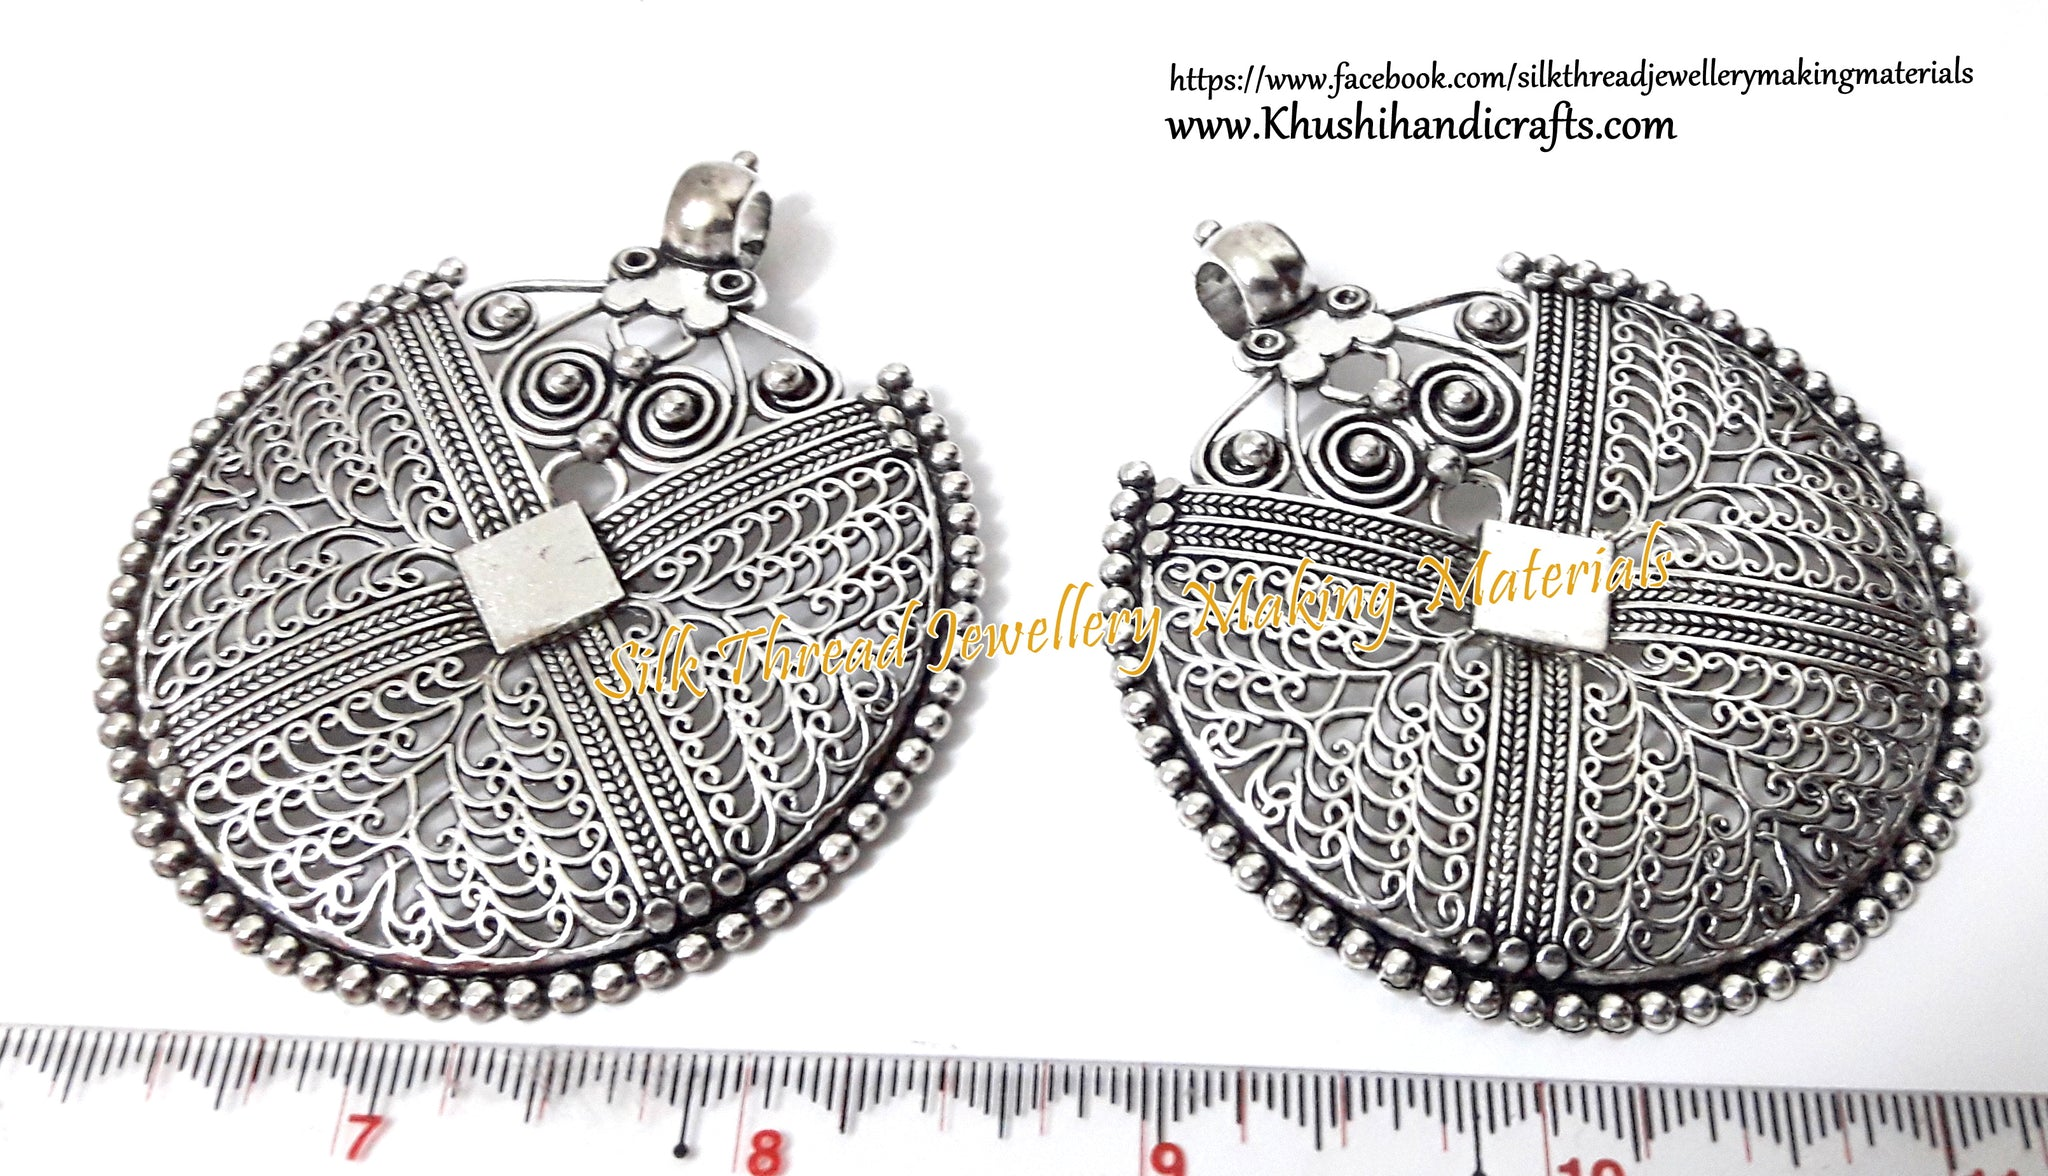 Antique Silver Filigree pendant